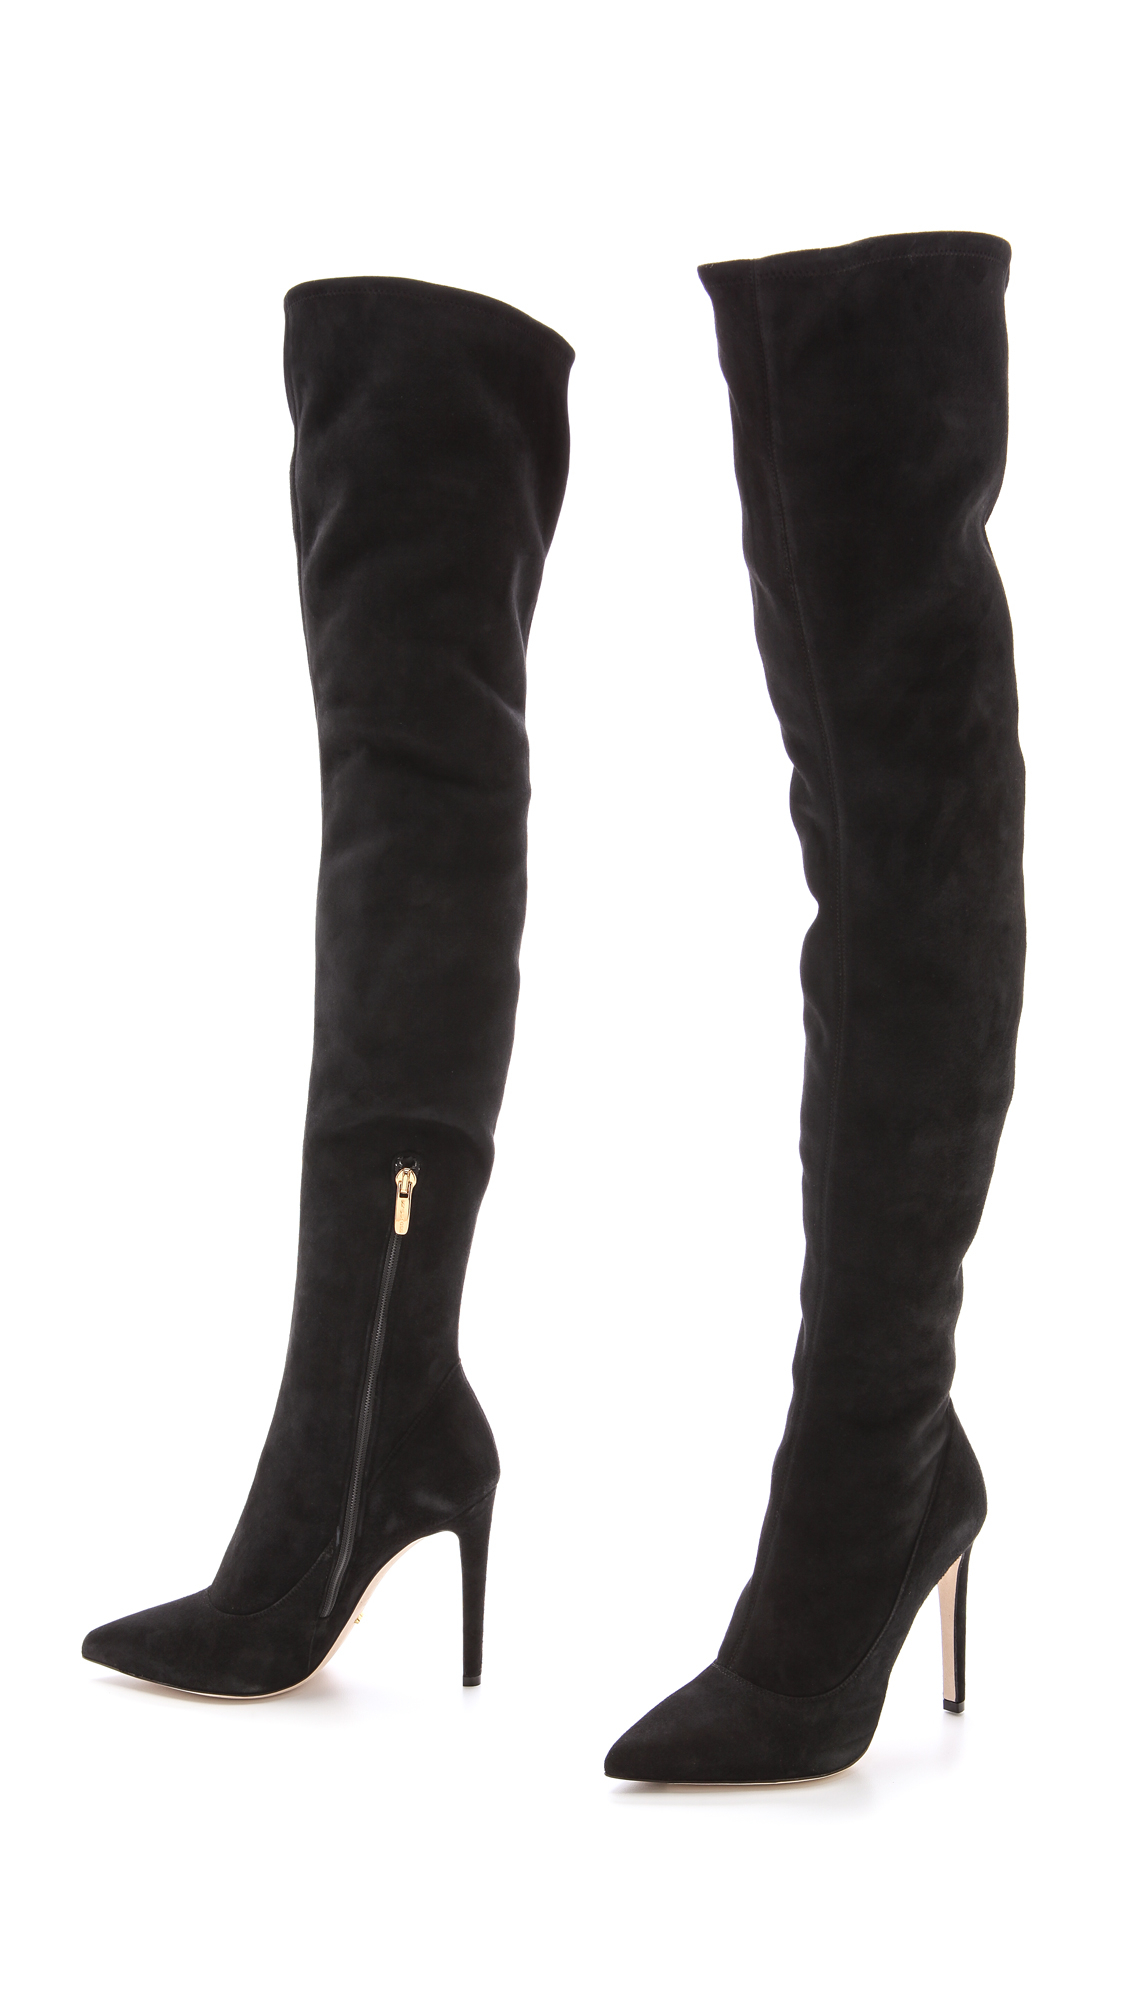 Black Suede Over The Knee Boots Heel tN36y8Em